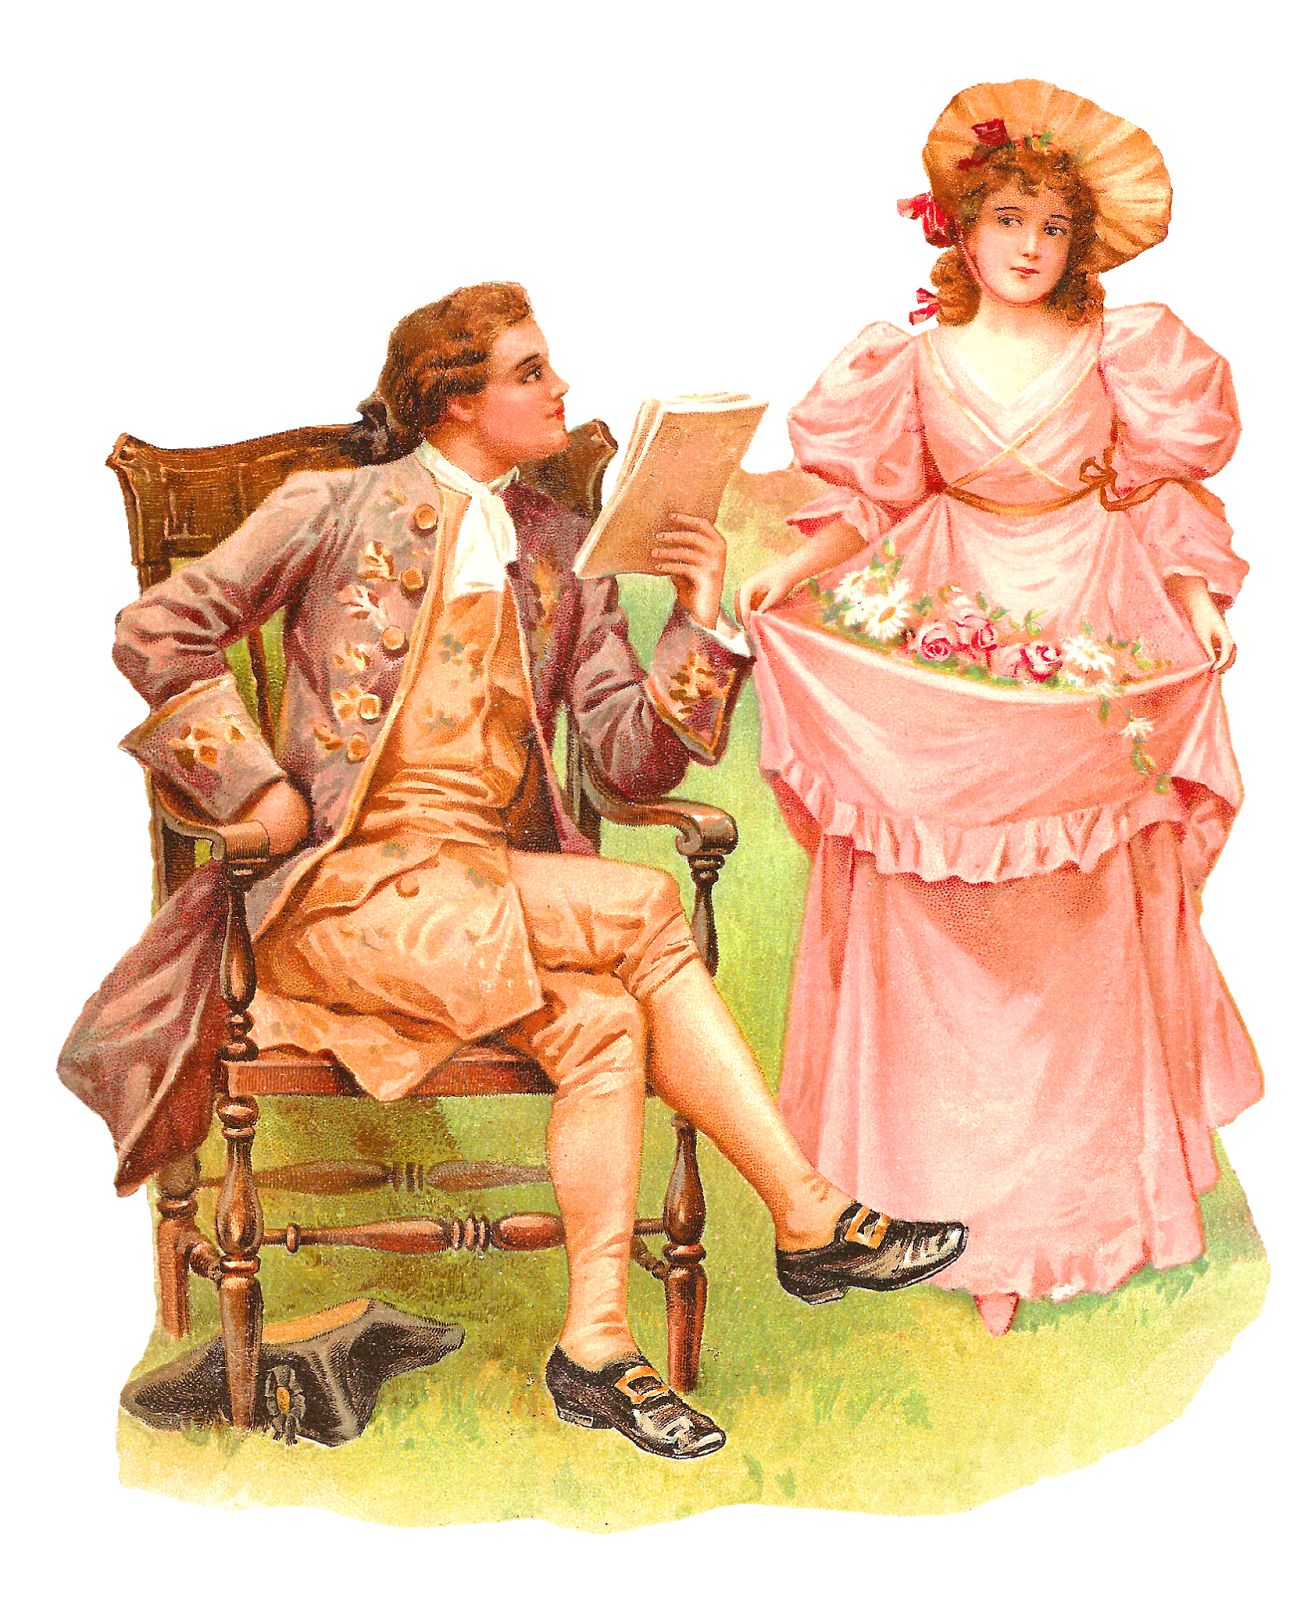 Antique images romantic colonial. Young clipart young gentleman